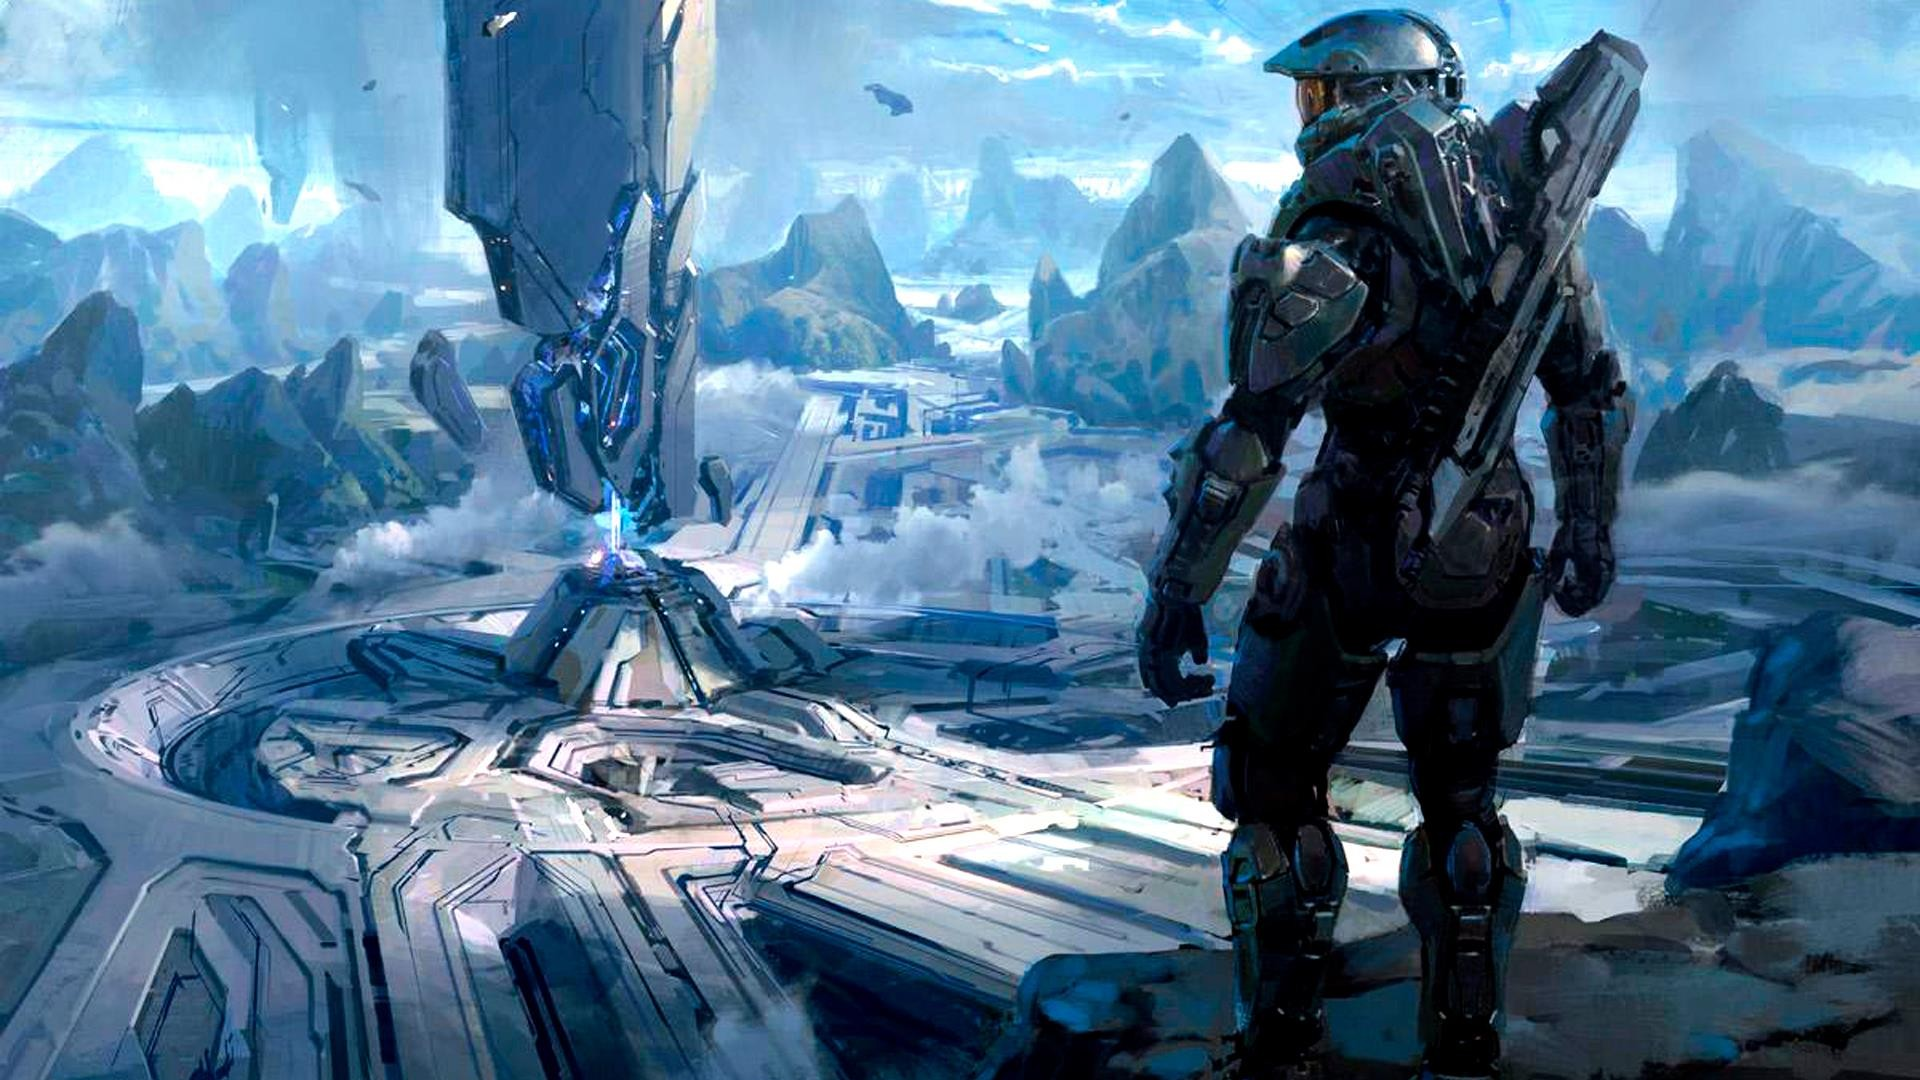 Halo Master Chief digital art concept art science fiction artwork 1920x1080